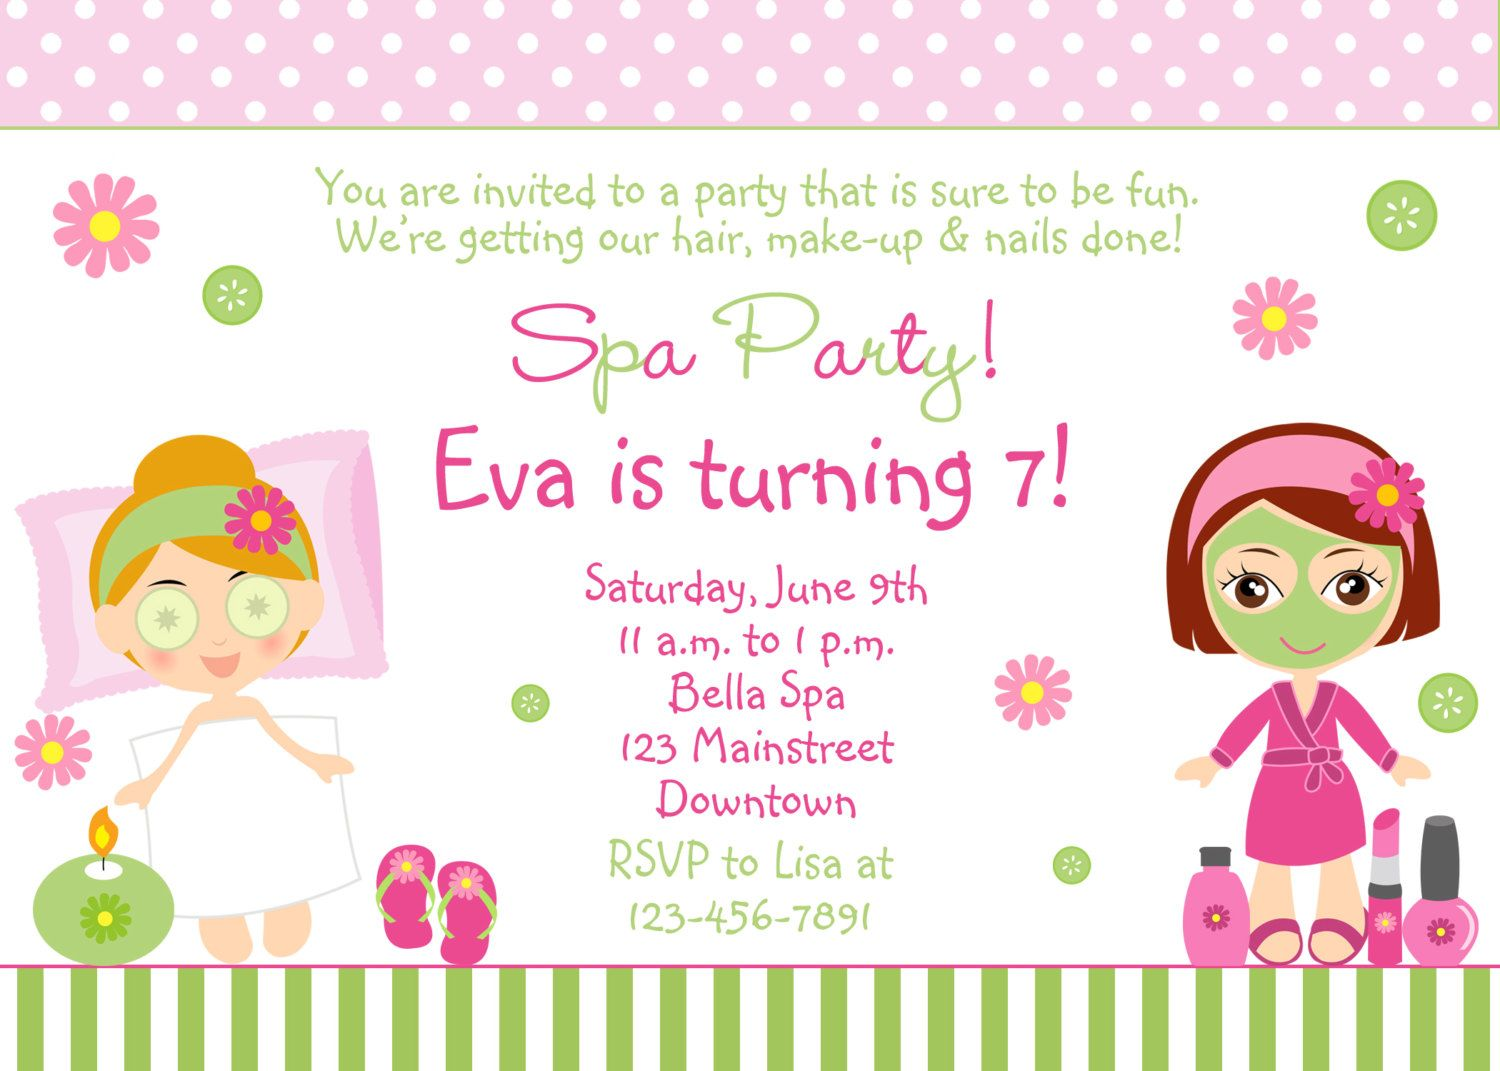 free spa party invitations - Ataum berglauf-verband com